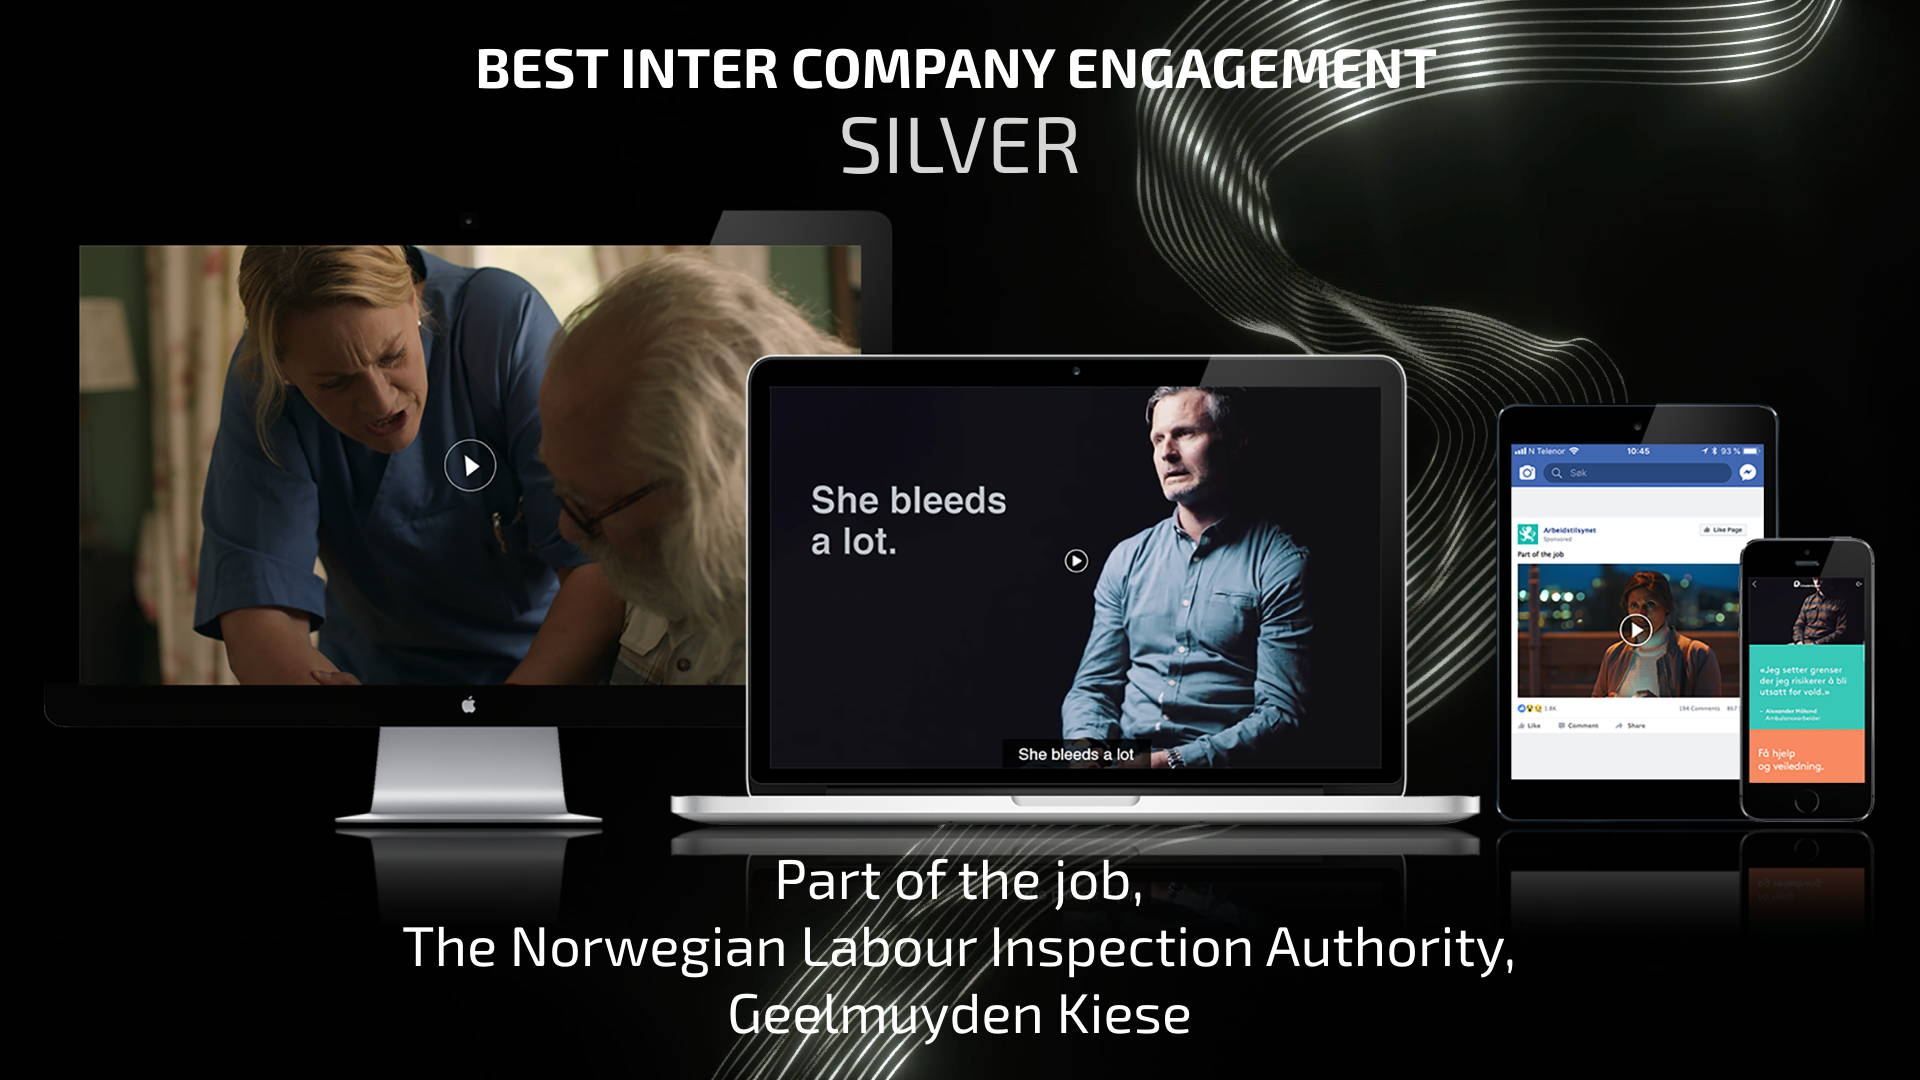 Best Inter Company Engagement - Silver